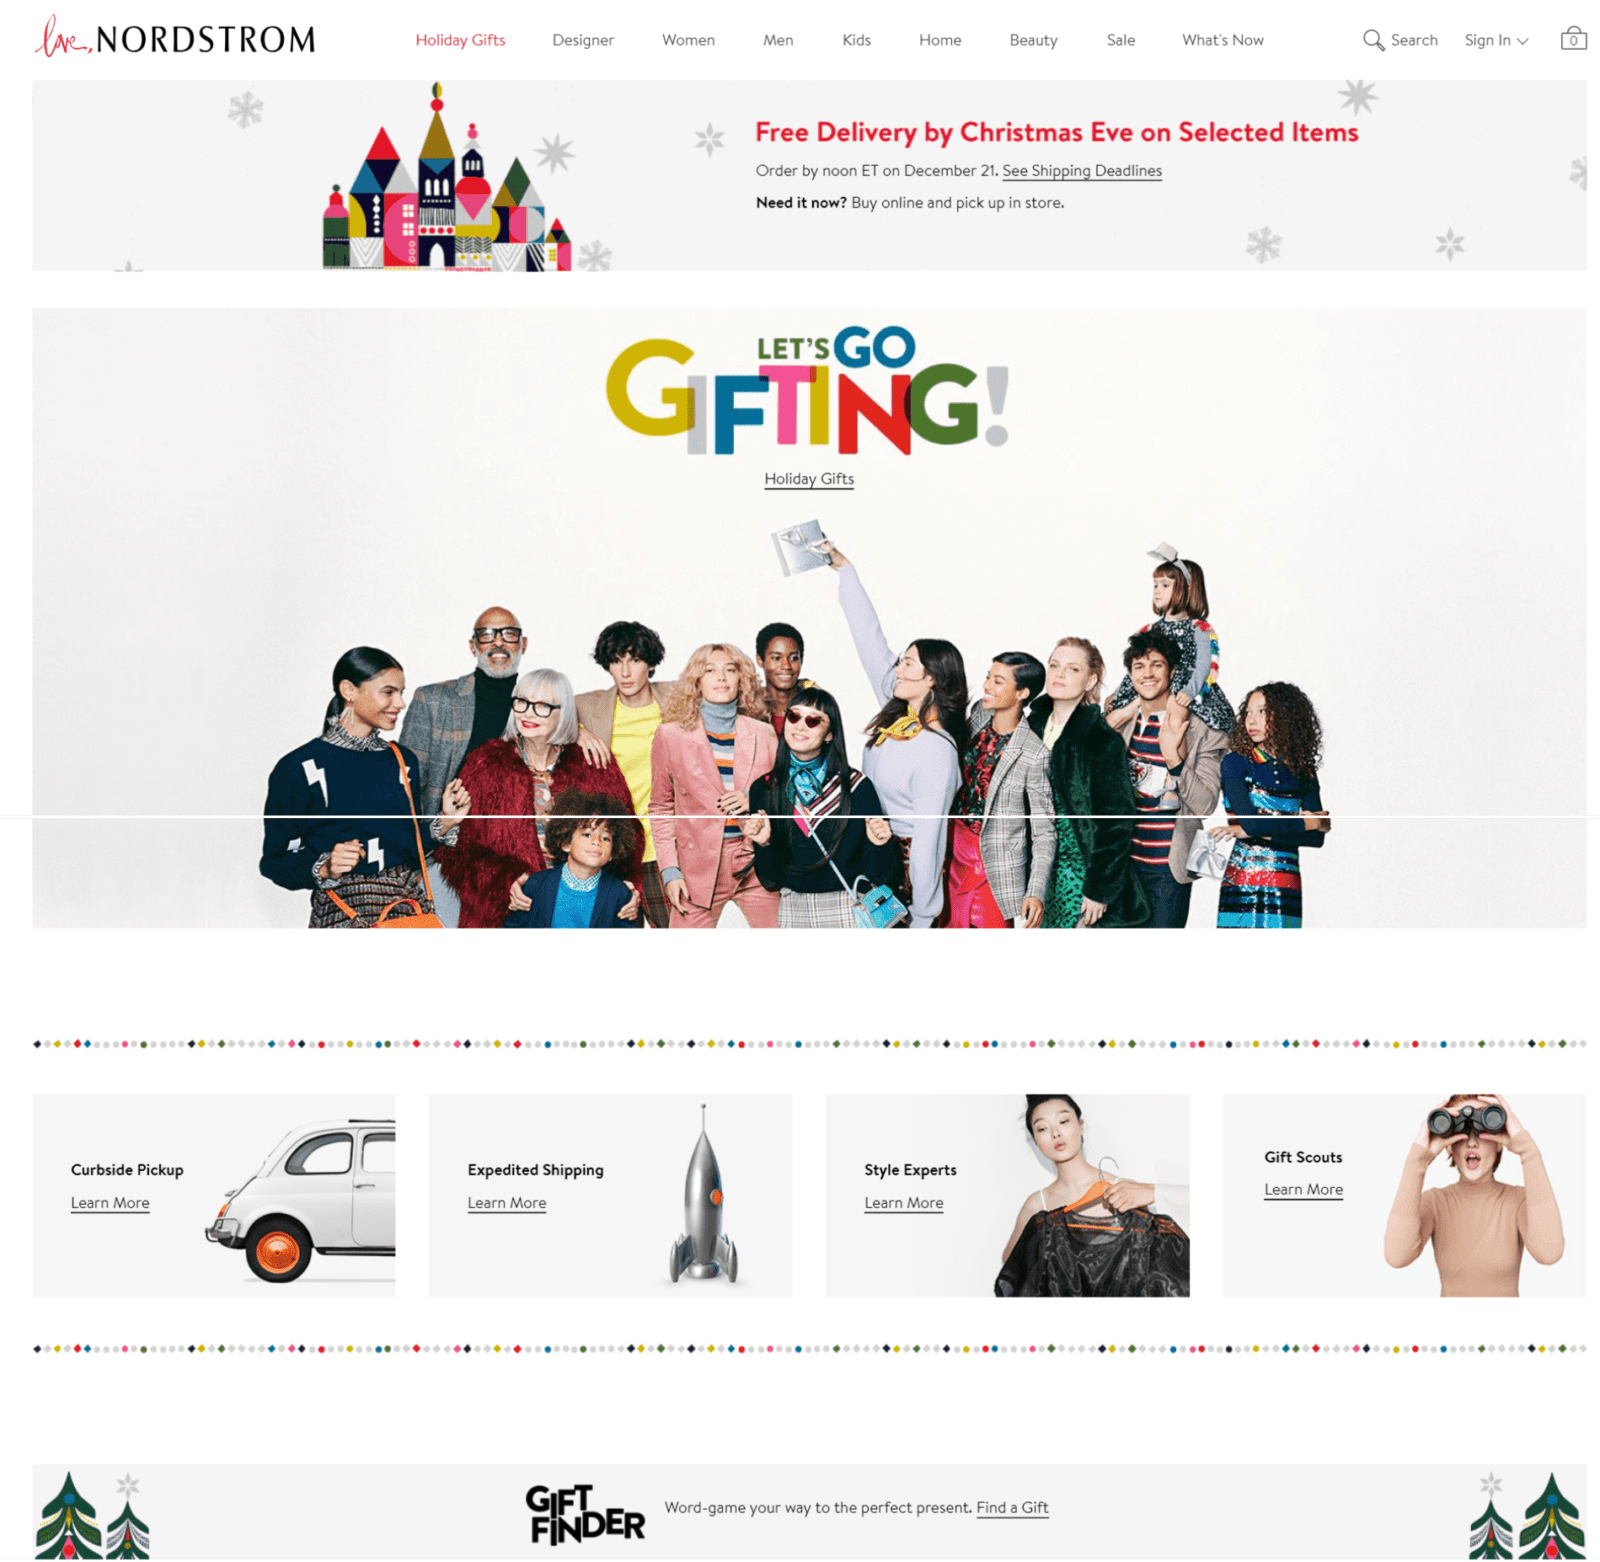 Holiday-ready web design UX example by Nordstrorm